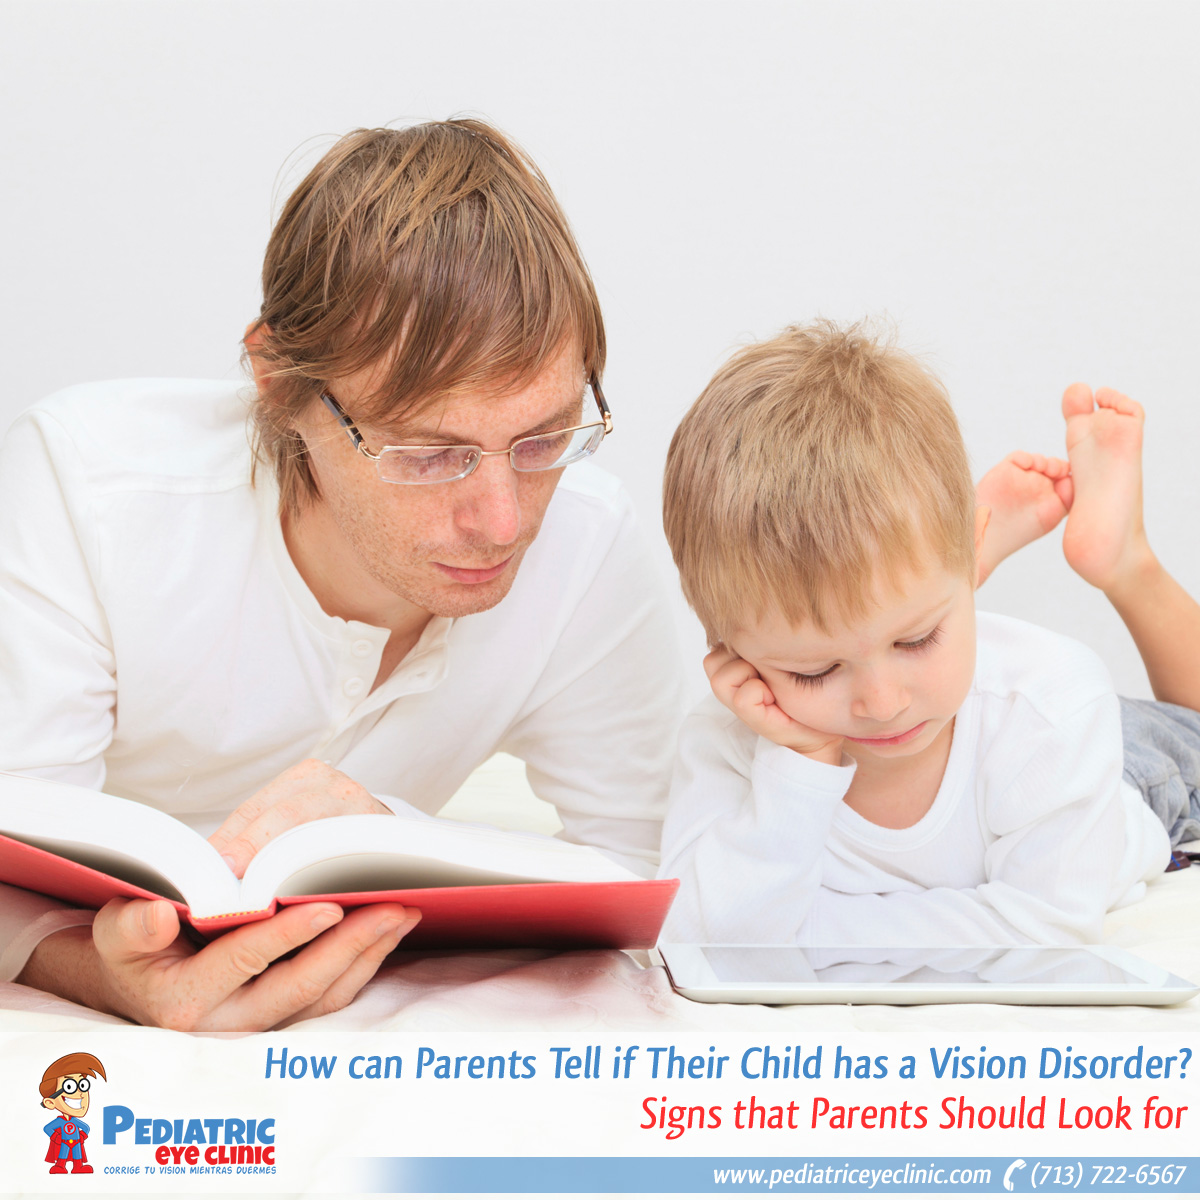 29-how-can-parents-tell-if-their-child-has-a-vision-disorder